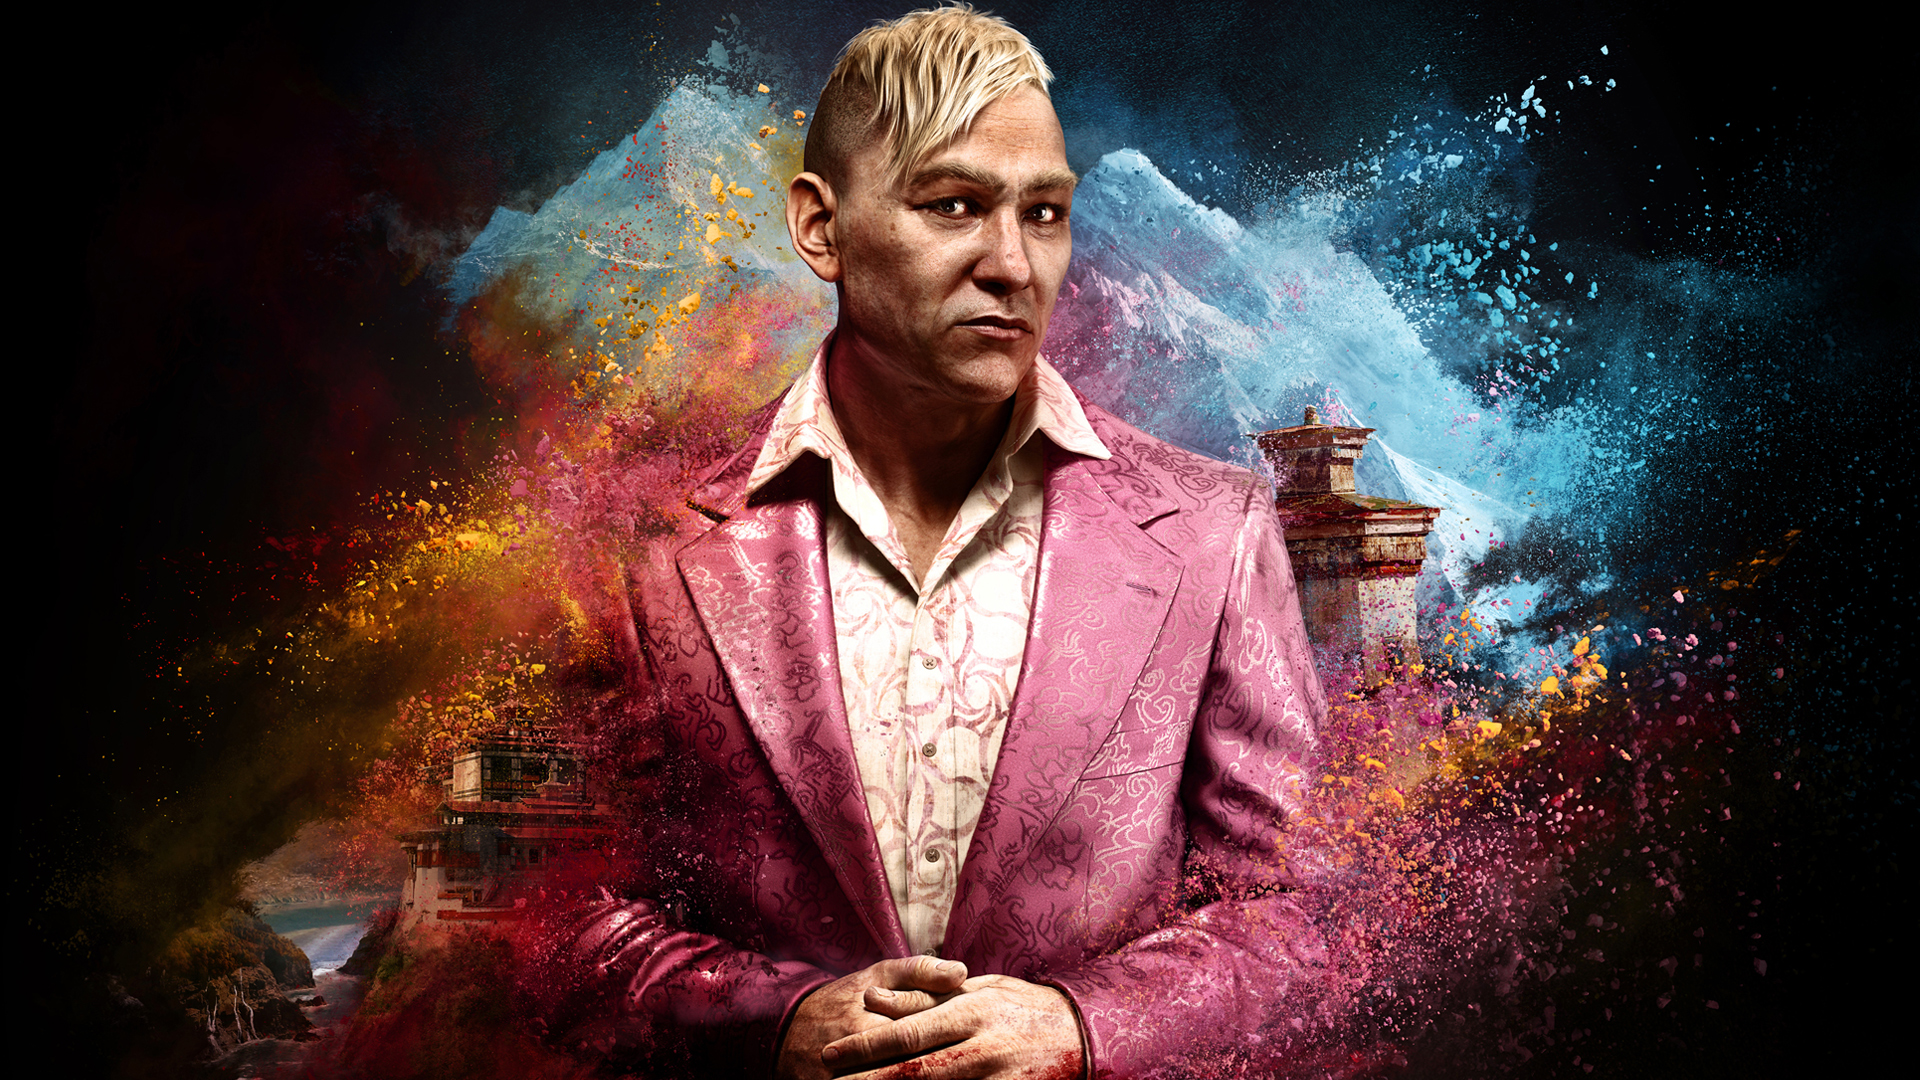 king pagan min in far cry wallpapers - King Pagan Min in Far Cry 4 Wallpapers HD Wallpapers